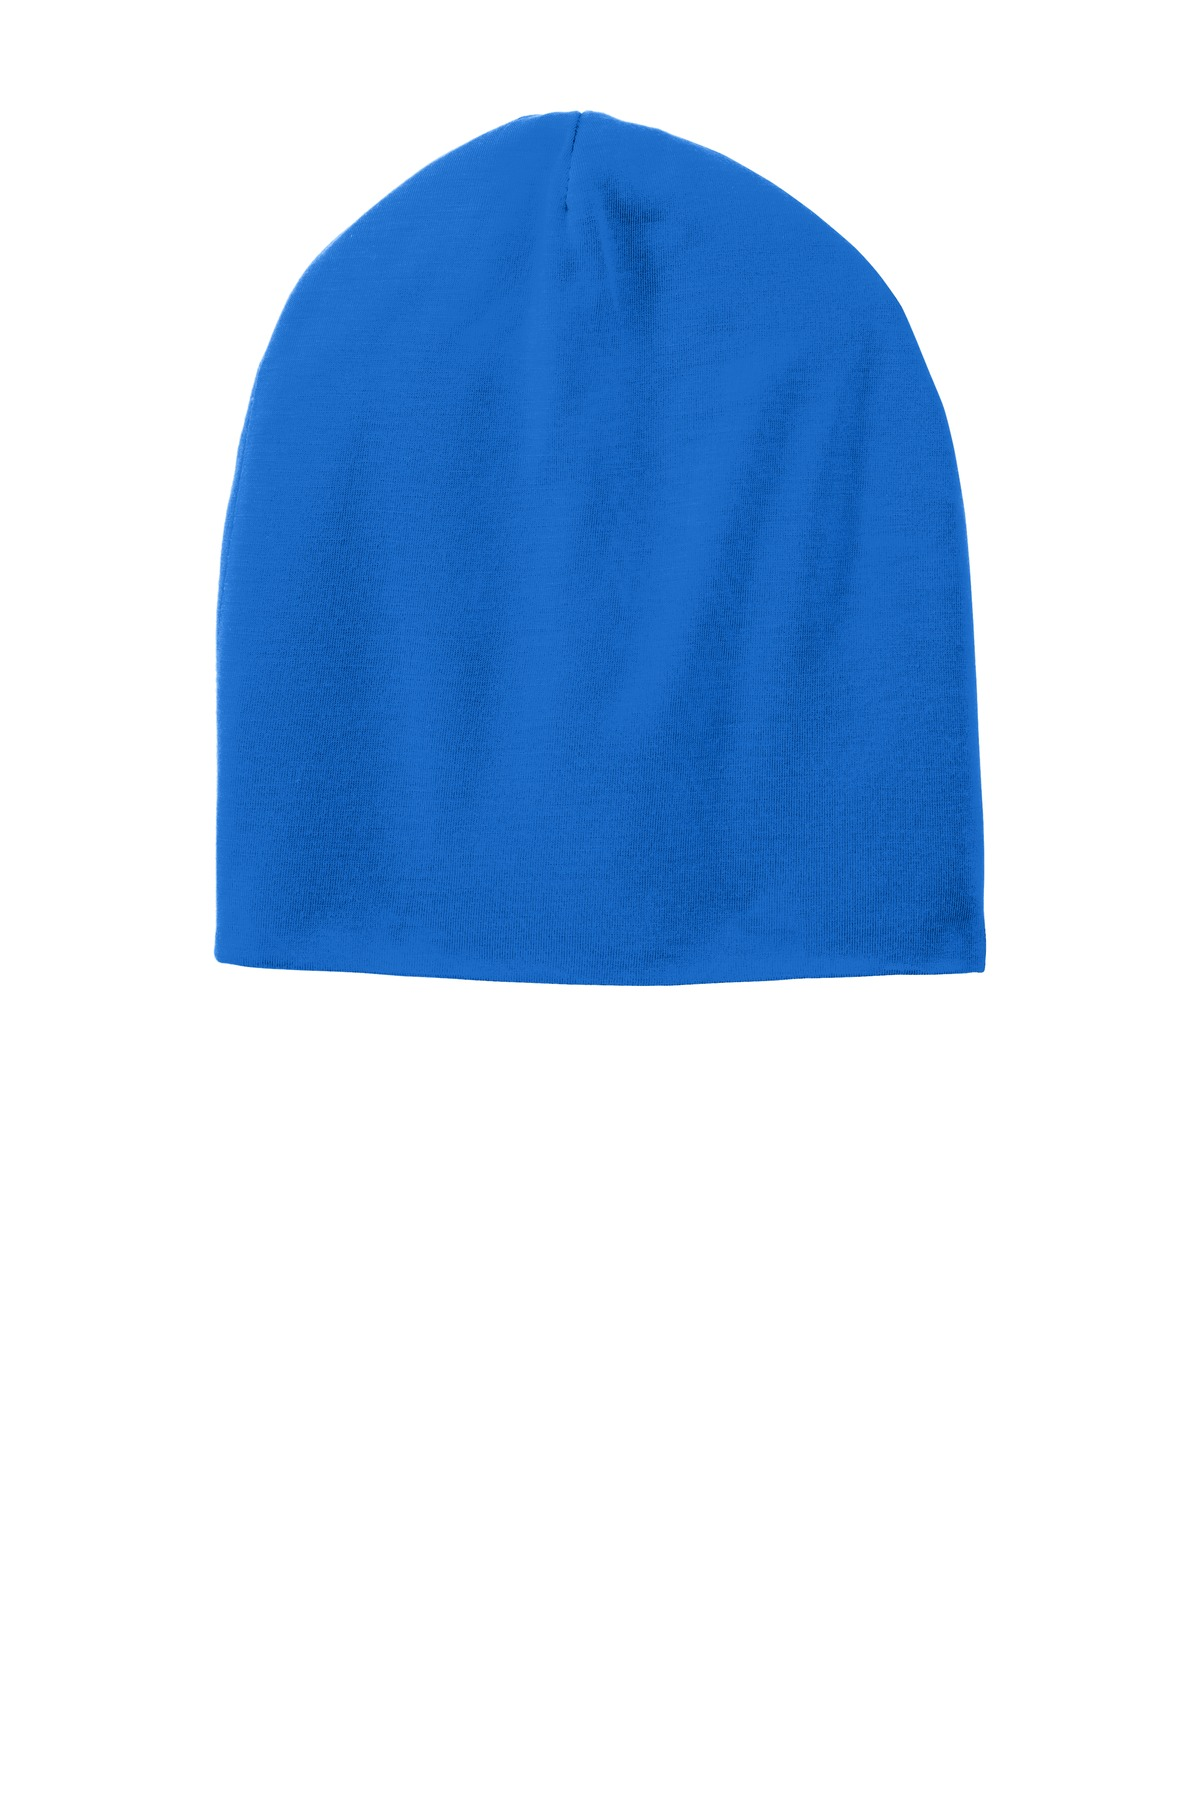 Sport-Tek ®  PosiCharge ®  Competitor™ Cotton Touch™ Jersey Knit Slouch Beanie. STC35 - True Royal